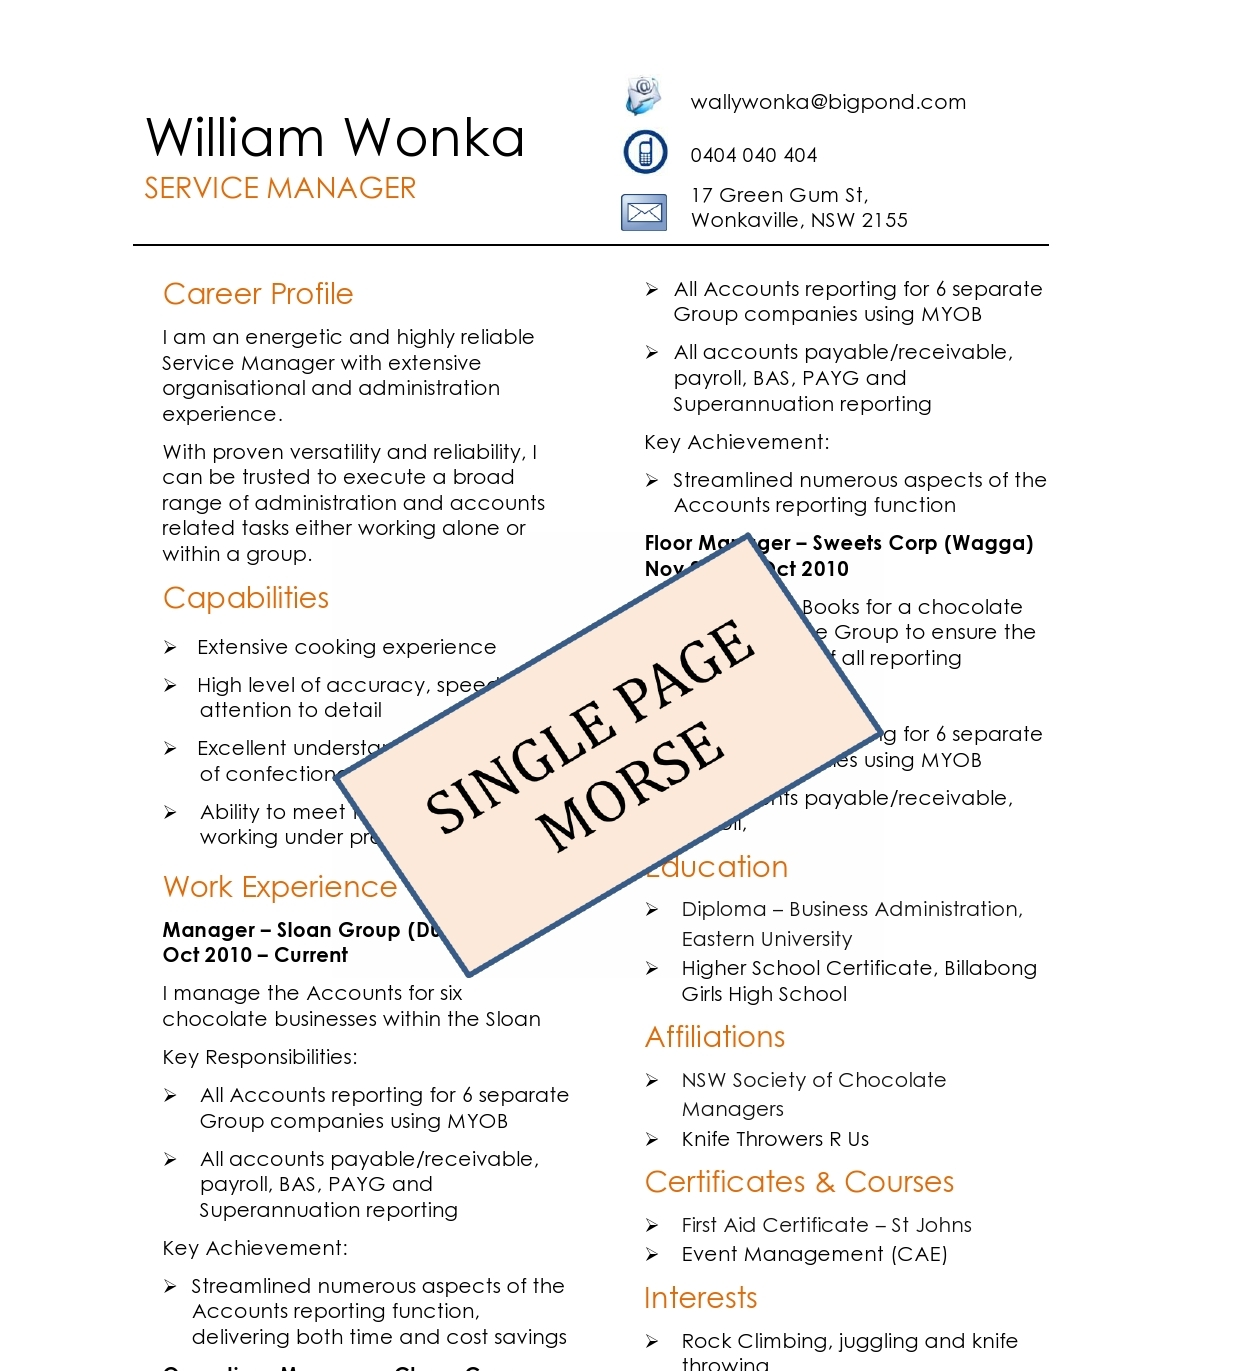 Resume Template For Pages,Diamond Image Resume Template for Pages ...